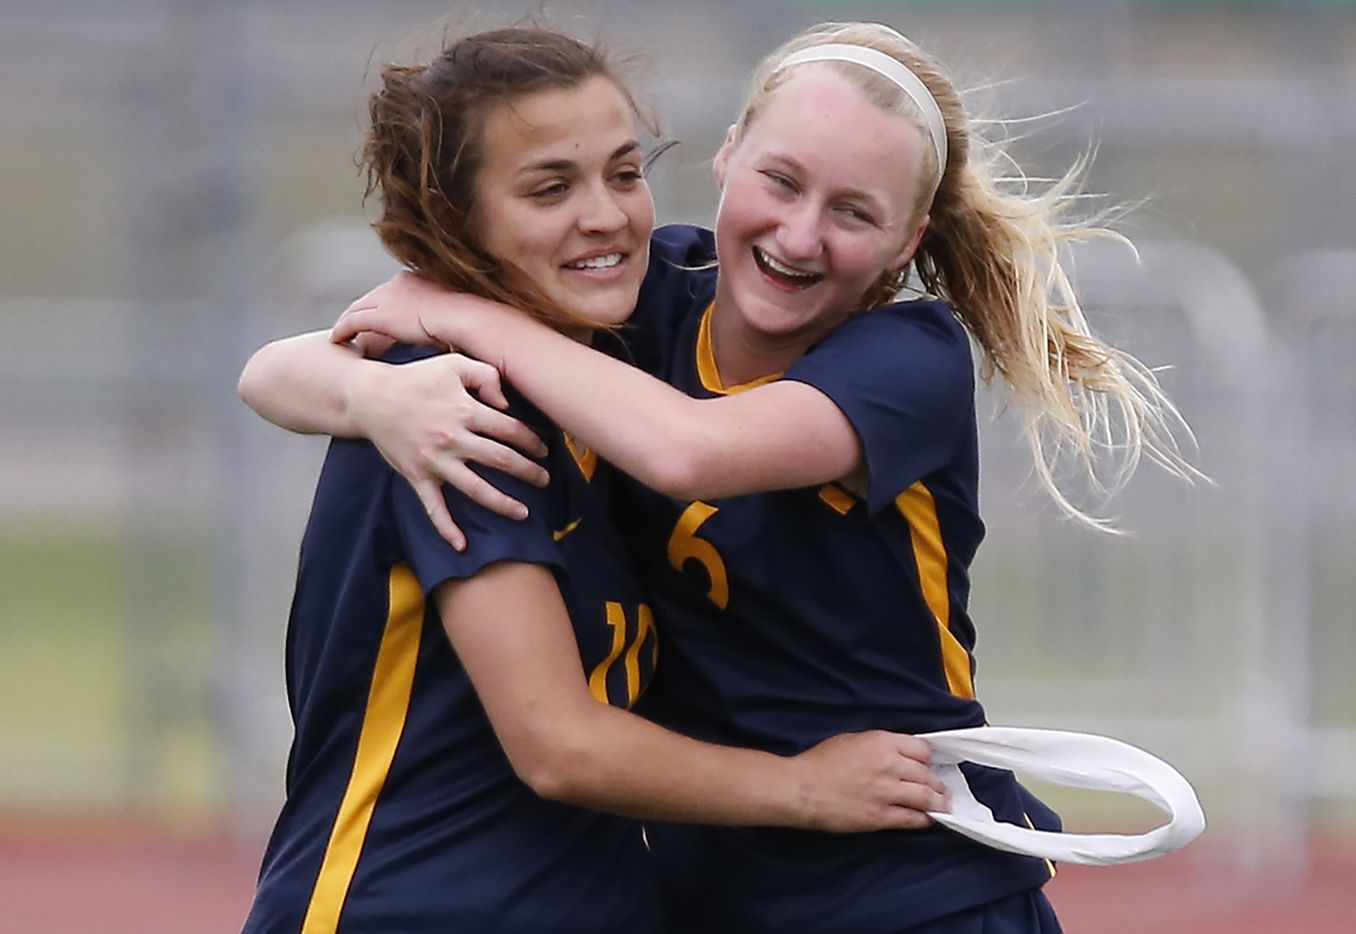 Highland Park team captain Presley Echols (10) is embraced by Keller Matise (6) after Echols scored the go ahead goal in the second half during the Class 5A Region II Championship girls soccer game played at Standridge Stadium in Carrollton on Saturday, April 13, 2019.